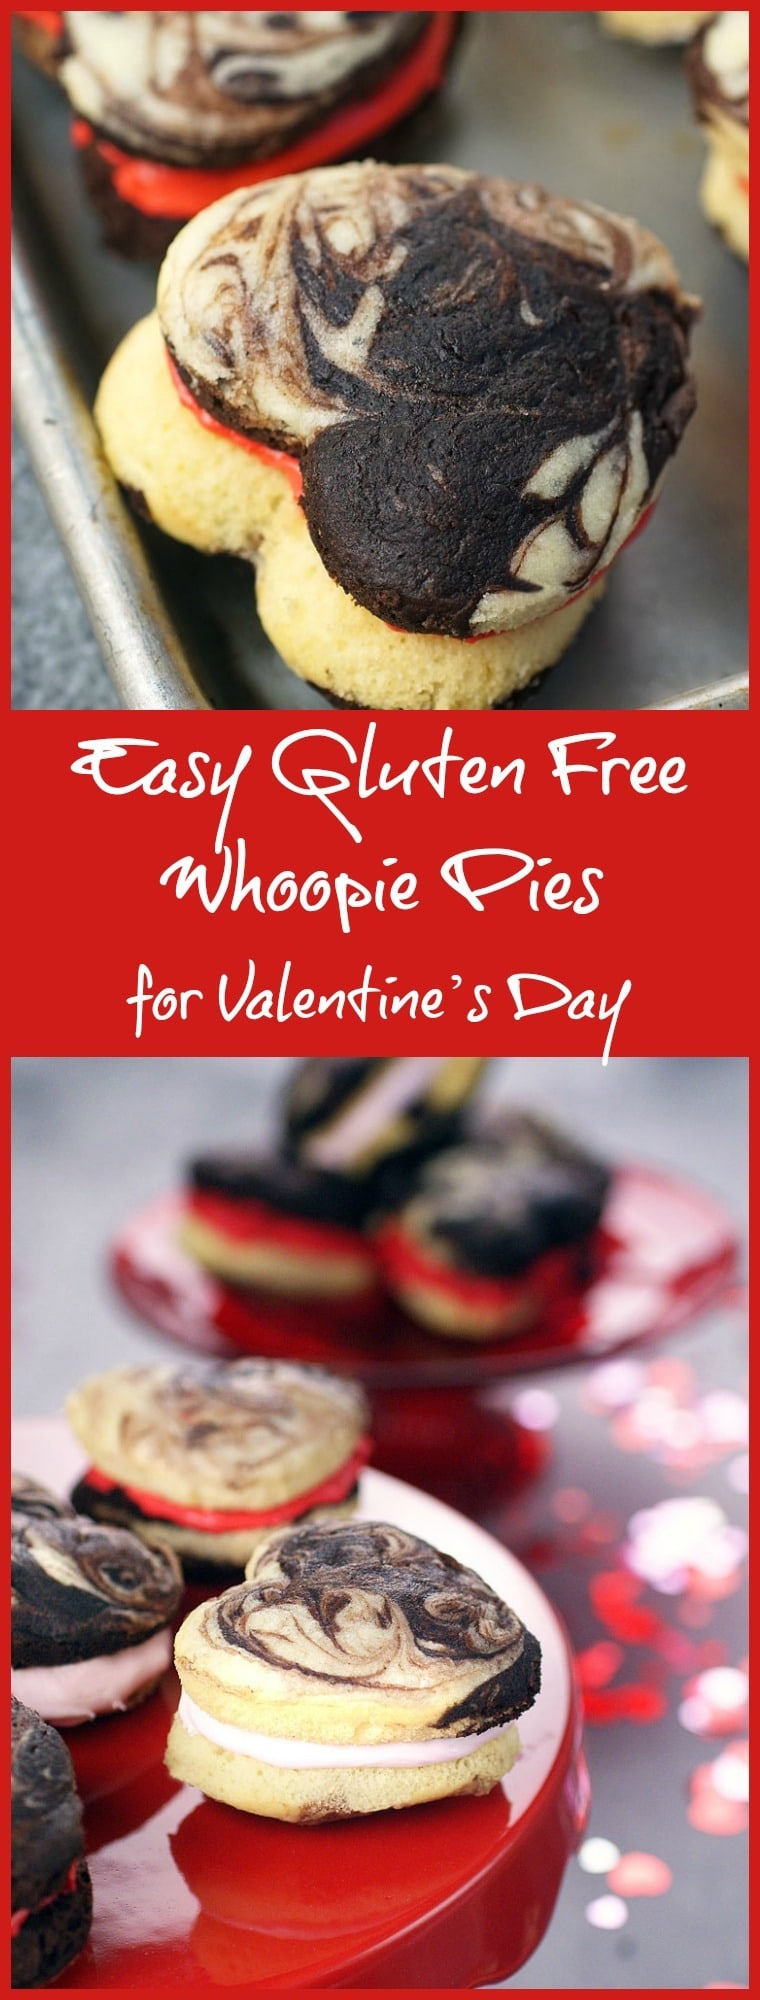 Looking for a special gluten free dessert treat for Valentine's Day? Try this recipe for Easy Gluten Free Whoopie Pies!